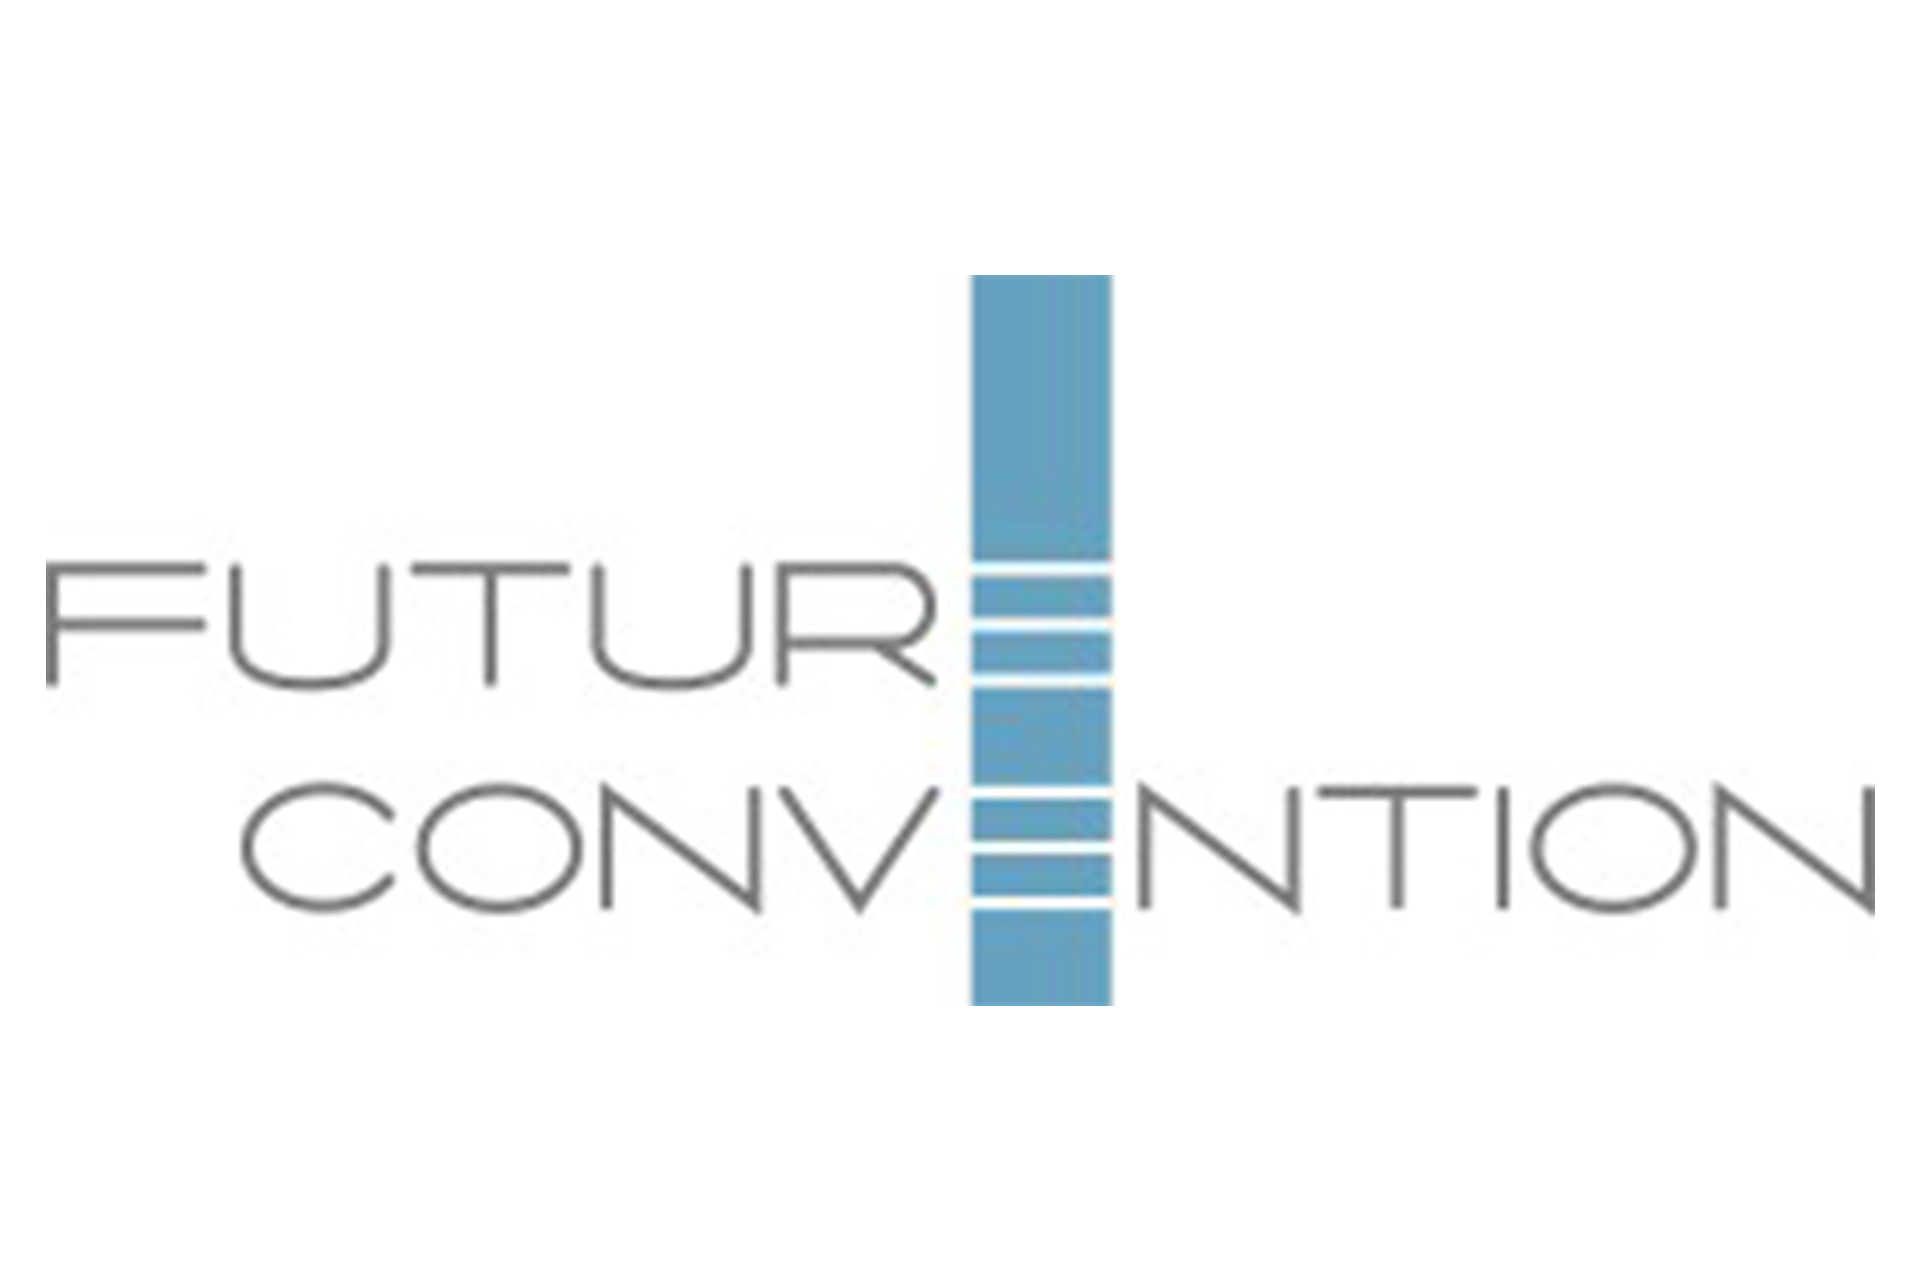 Future Convention - Logo